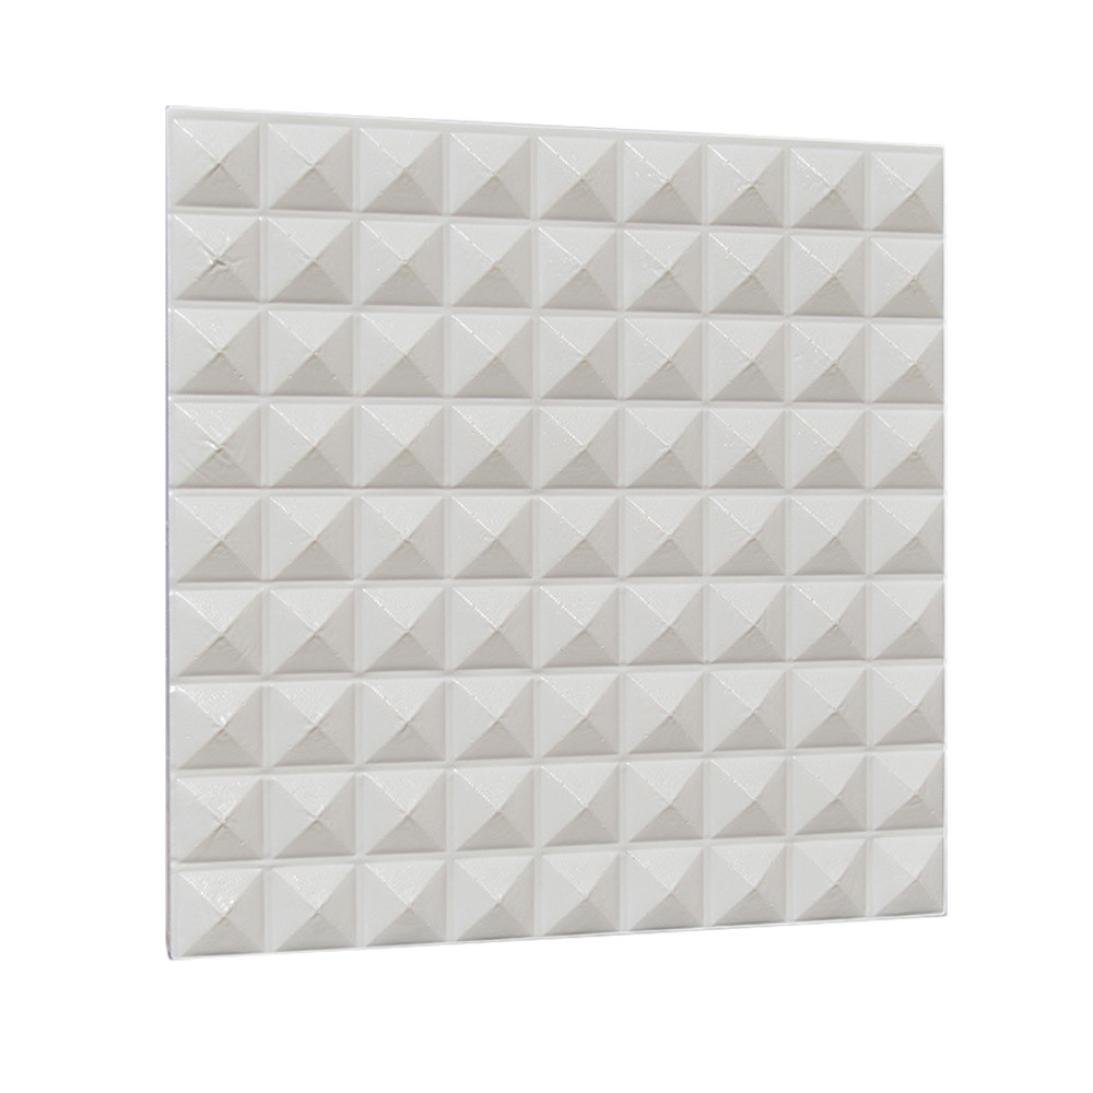 Sikye PE Foam 3D Wallpaper Simple Tile Self-adhesive Wall Stickers Background Decor Waterproof Pack of 2 (E)